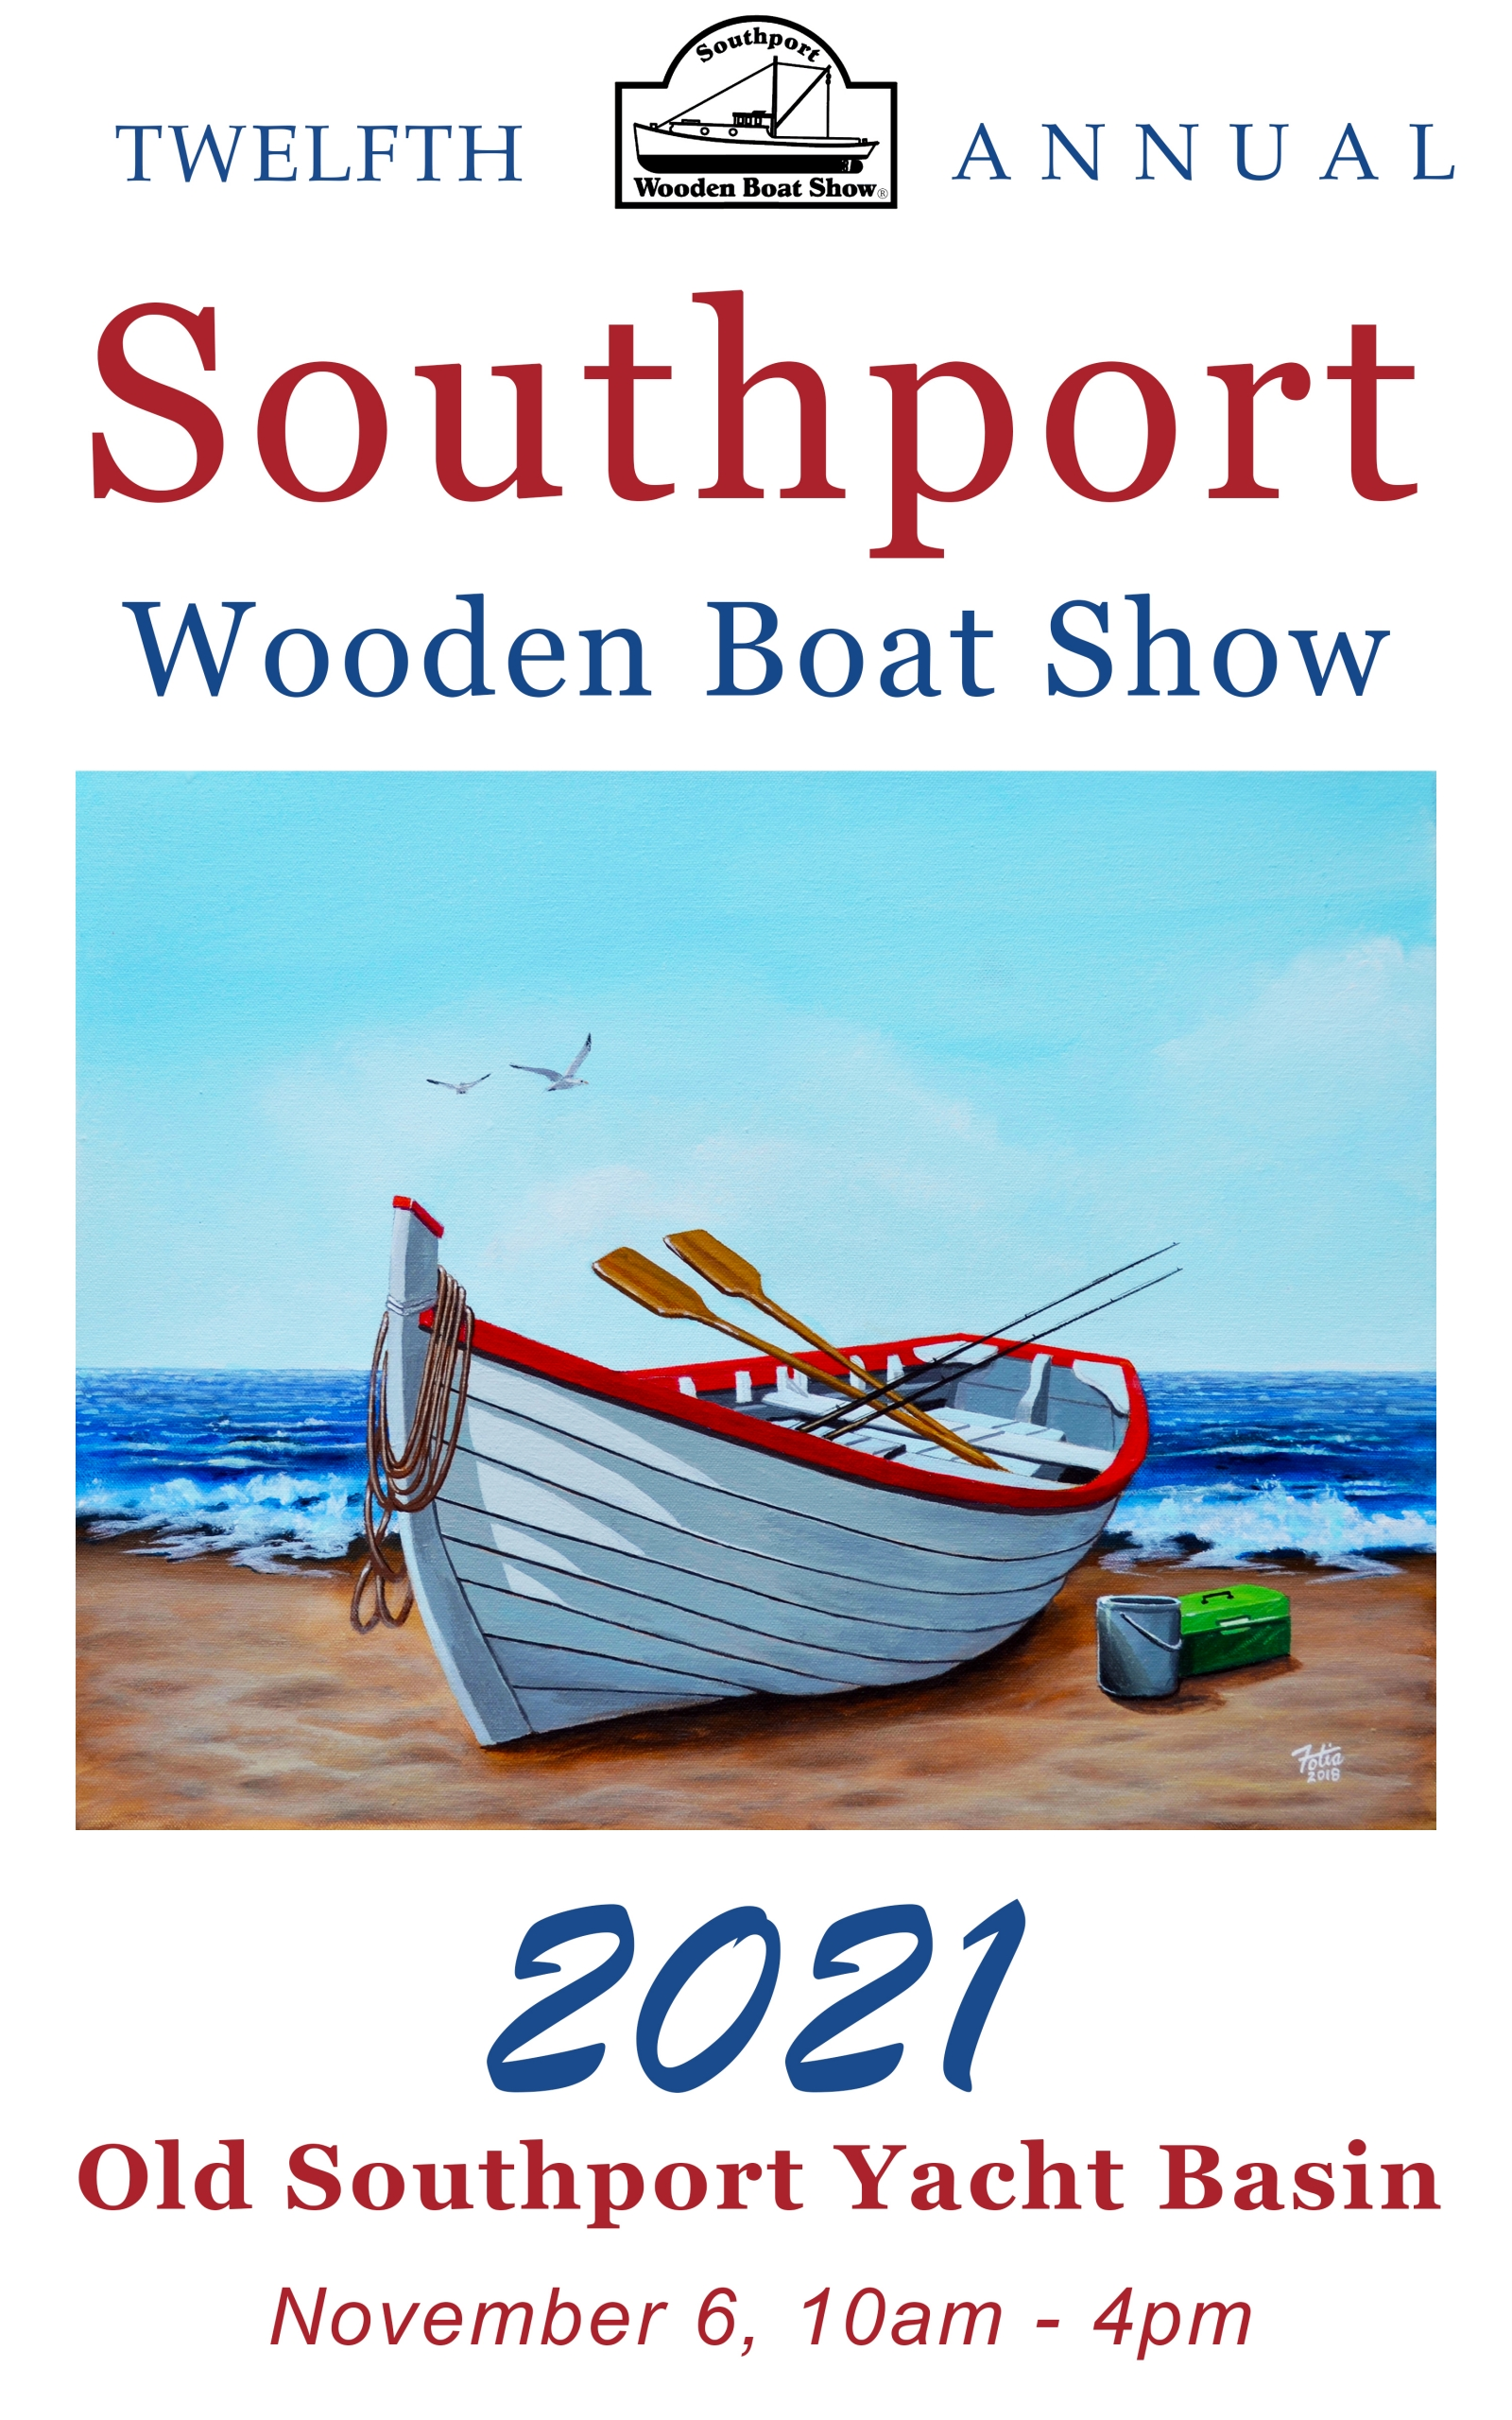 Southport Wooden Boat Show